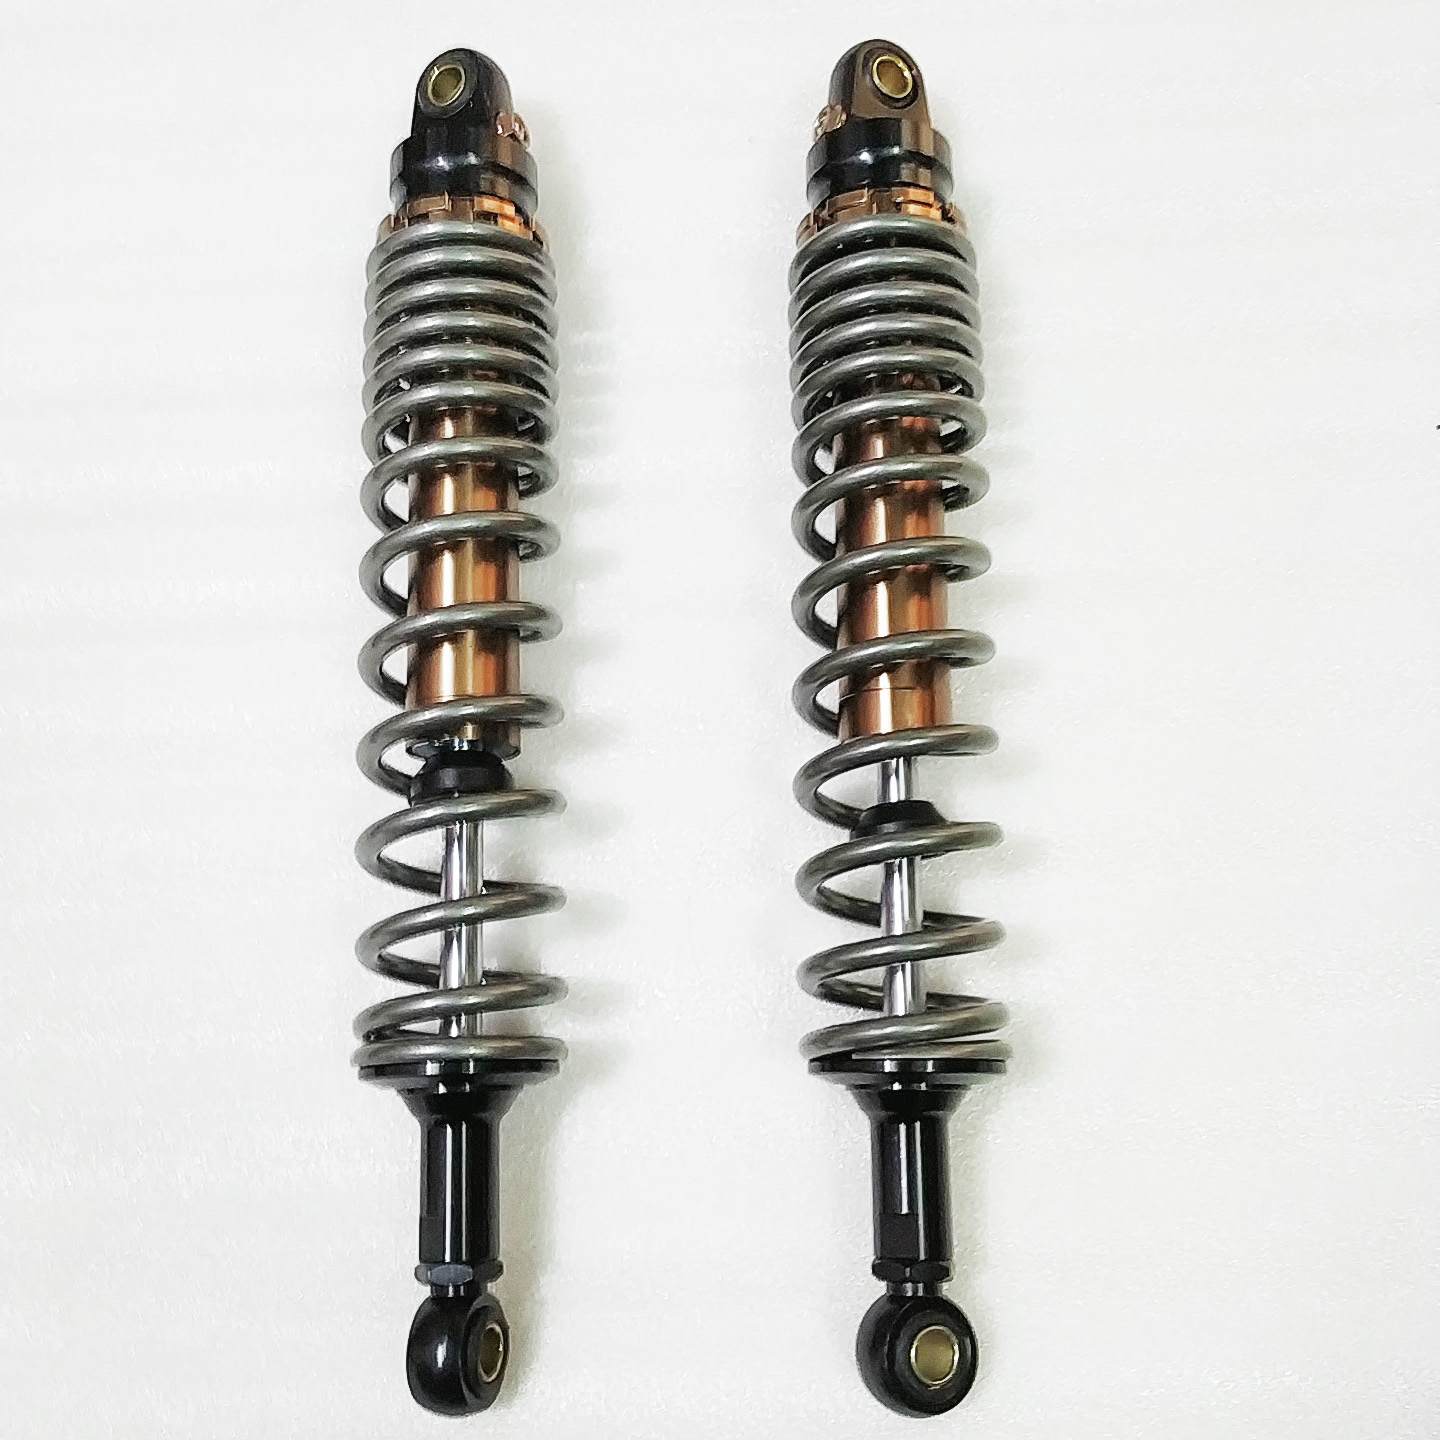 400mm Rear Air Shock Absorbers Universal For Honda Suzuki Yamaha Kawasaki ATV